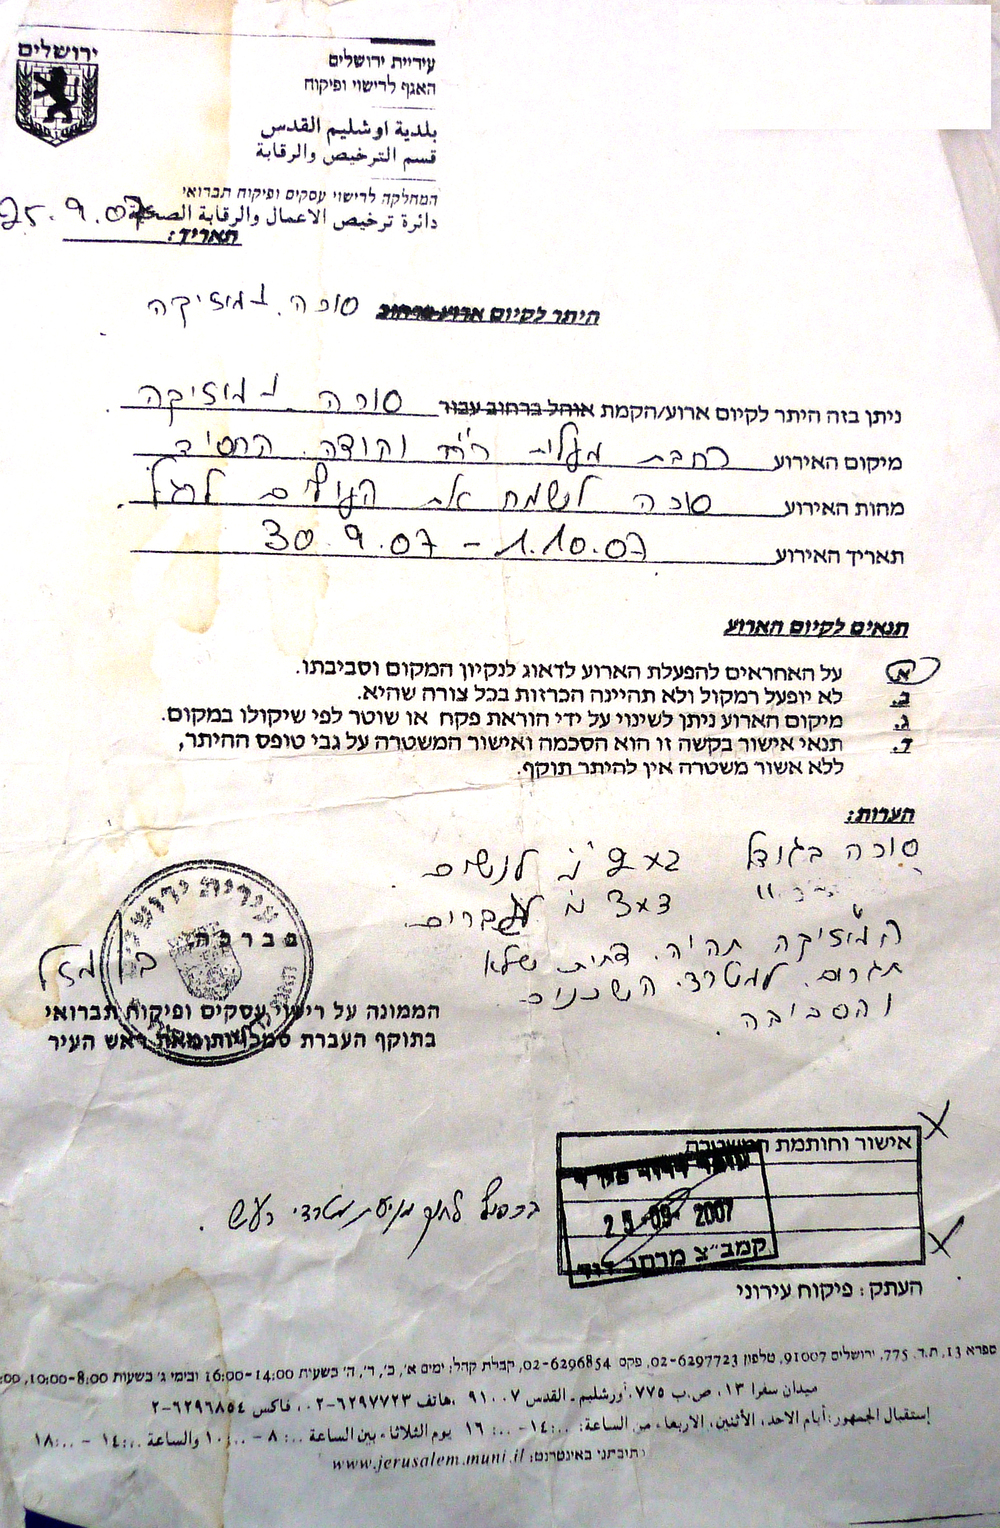 town hall permission for show, Jerusalem.JPG